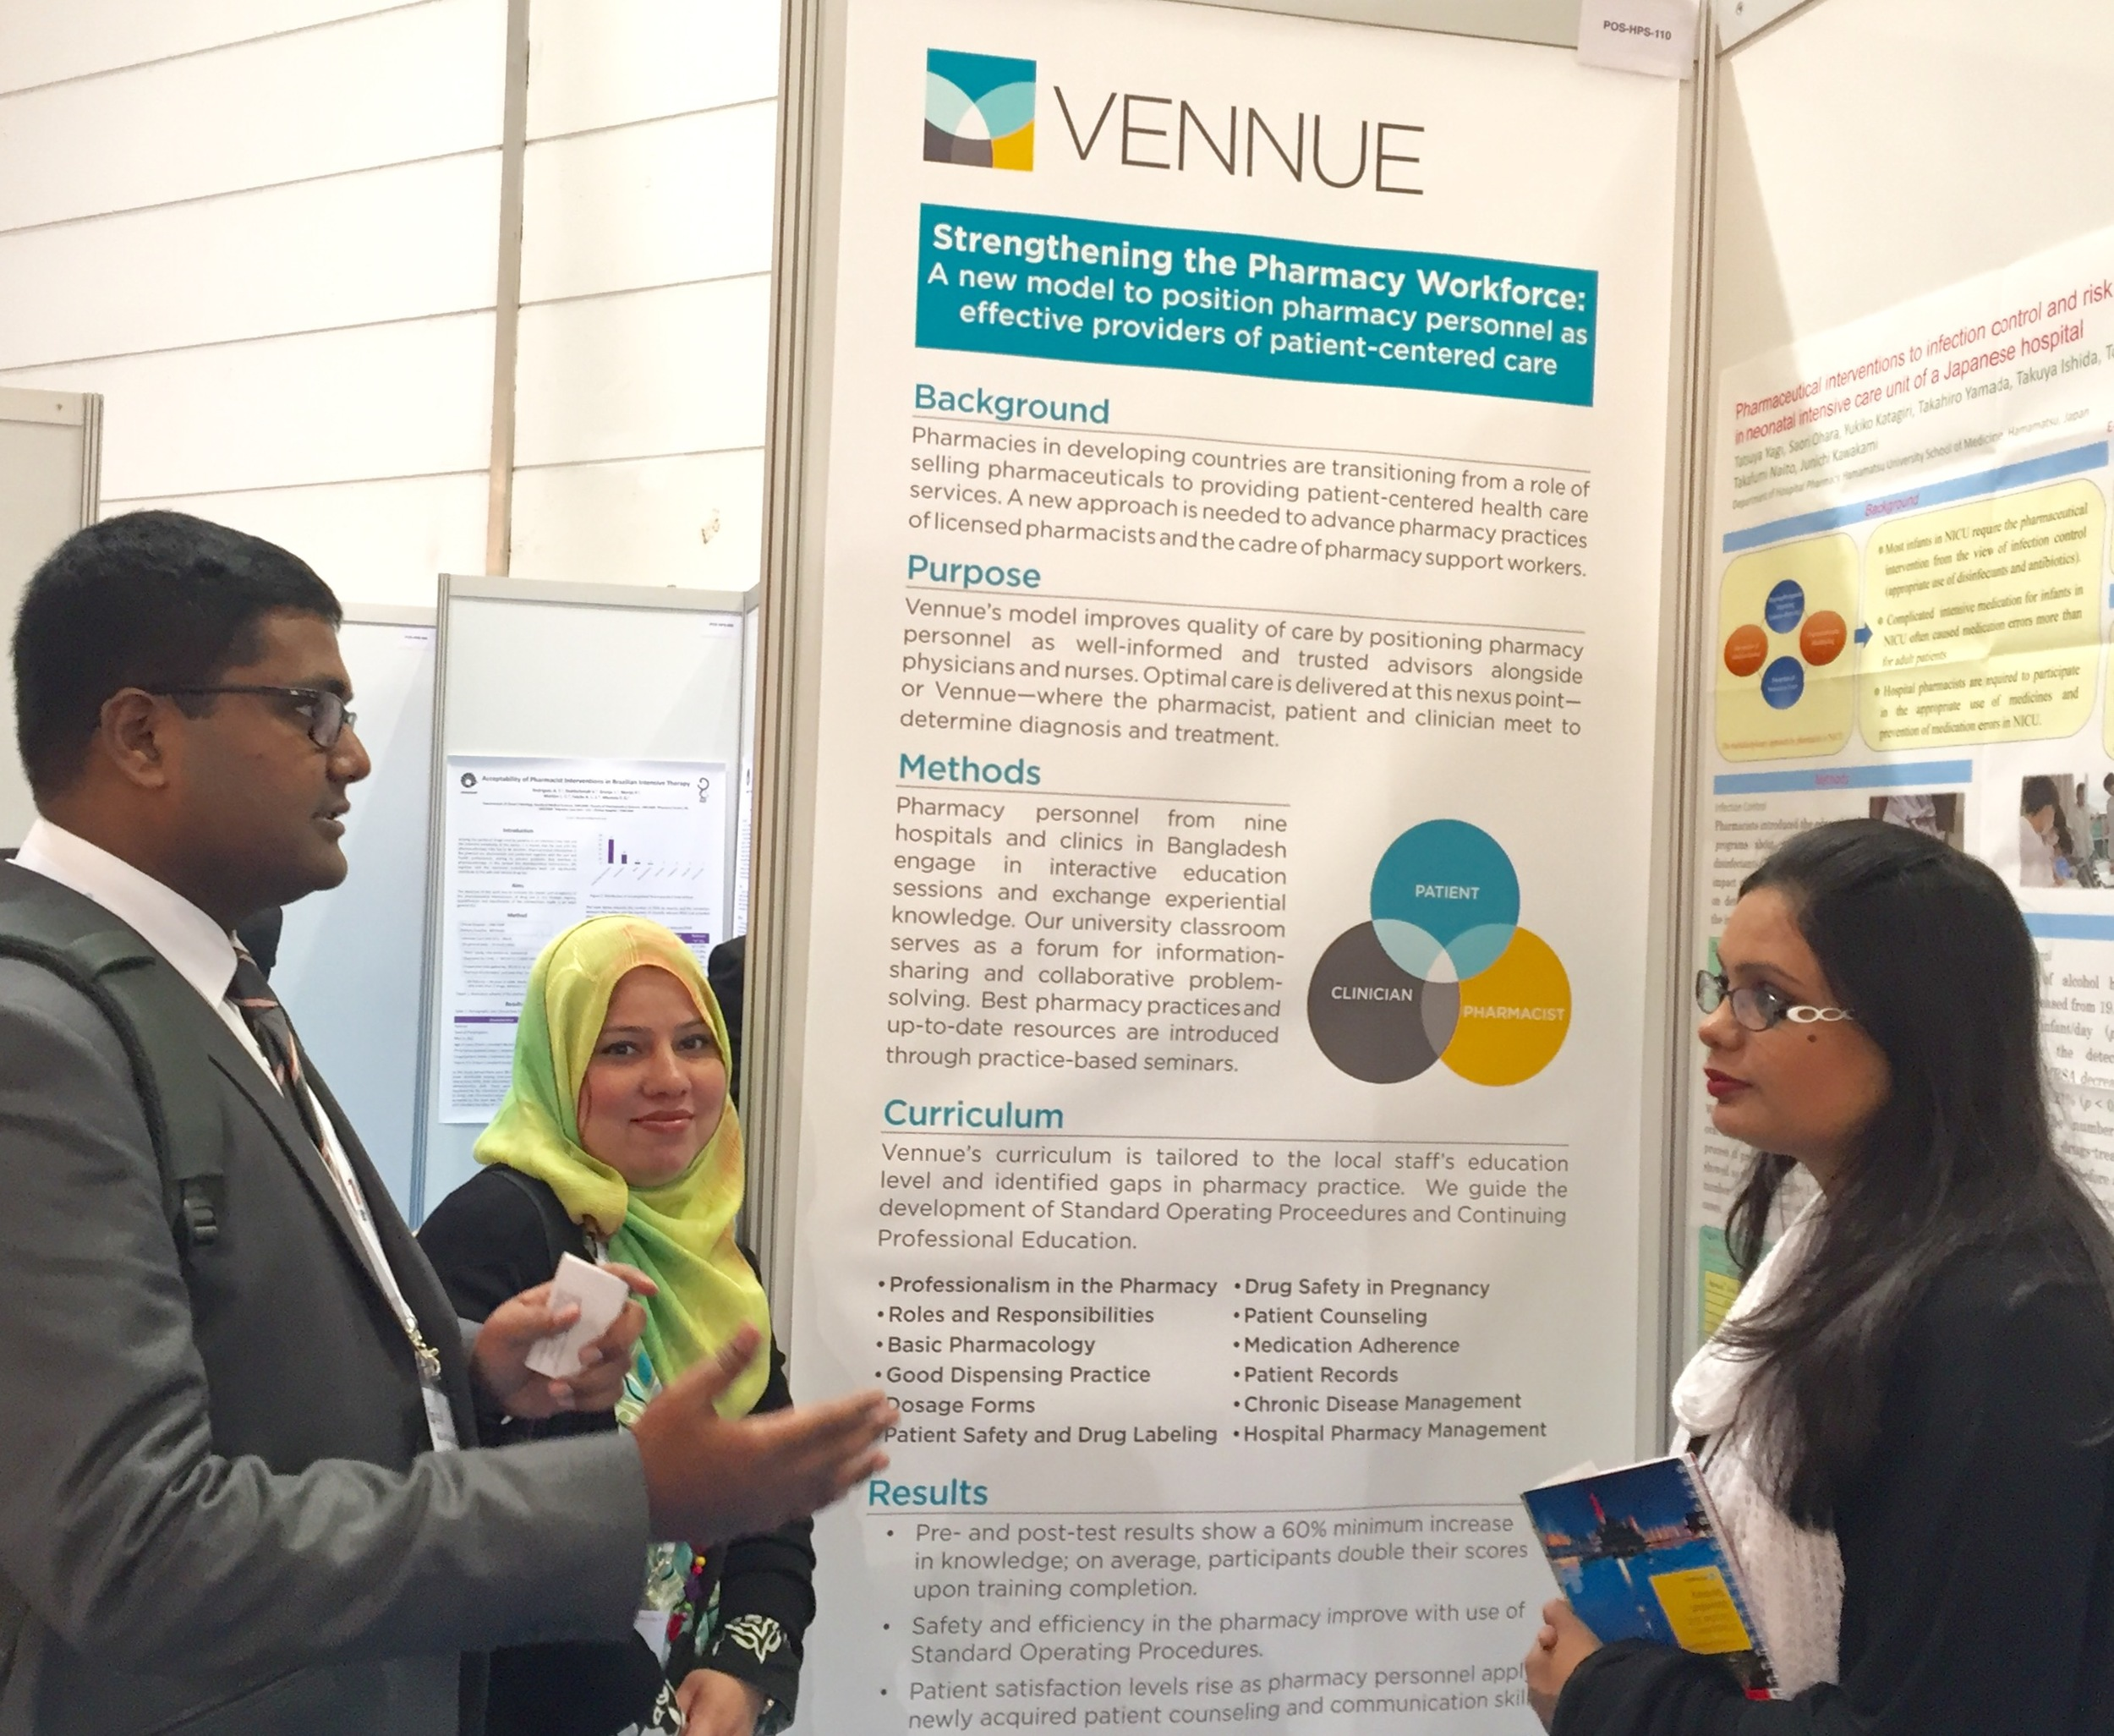 Bangladesh Country Director Mohammad Abusyed (far left) discusses Vennue's program model with university professors from Pakistan.